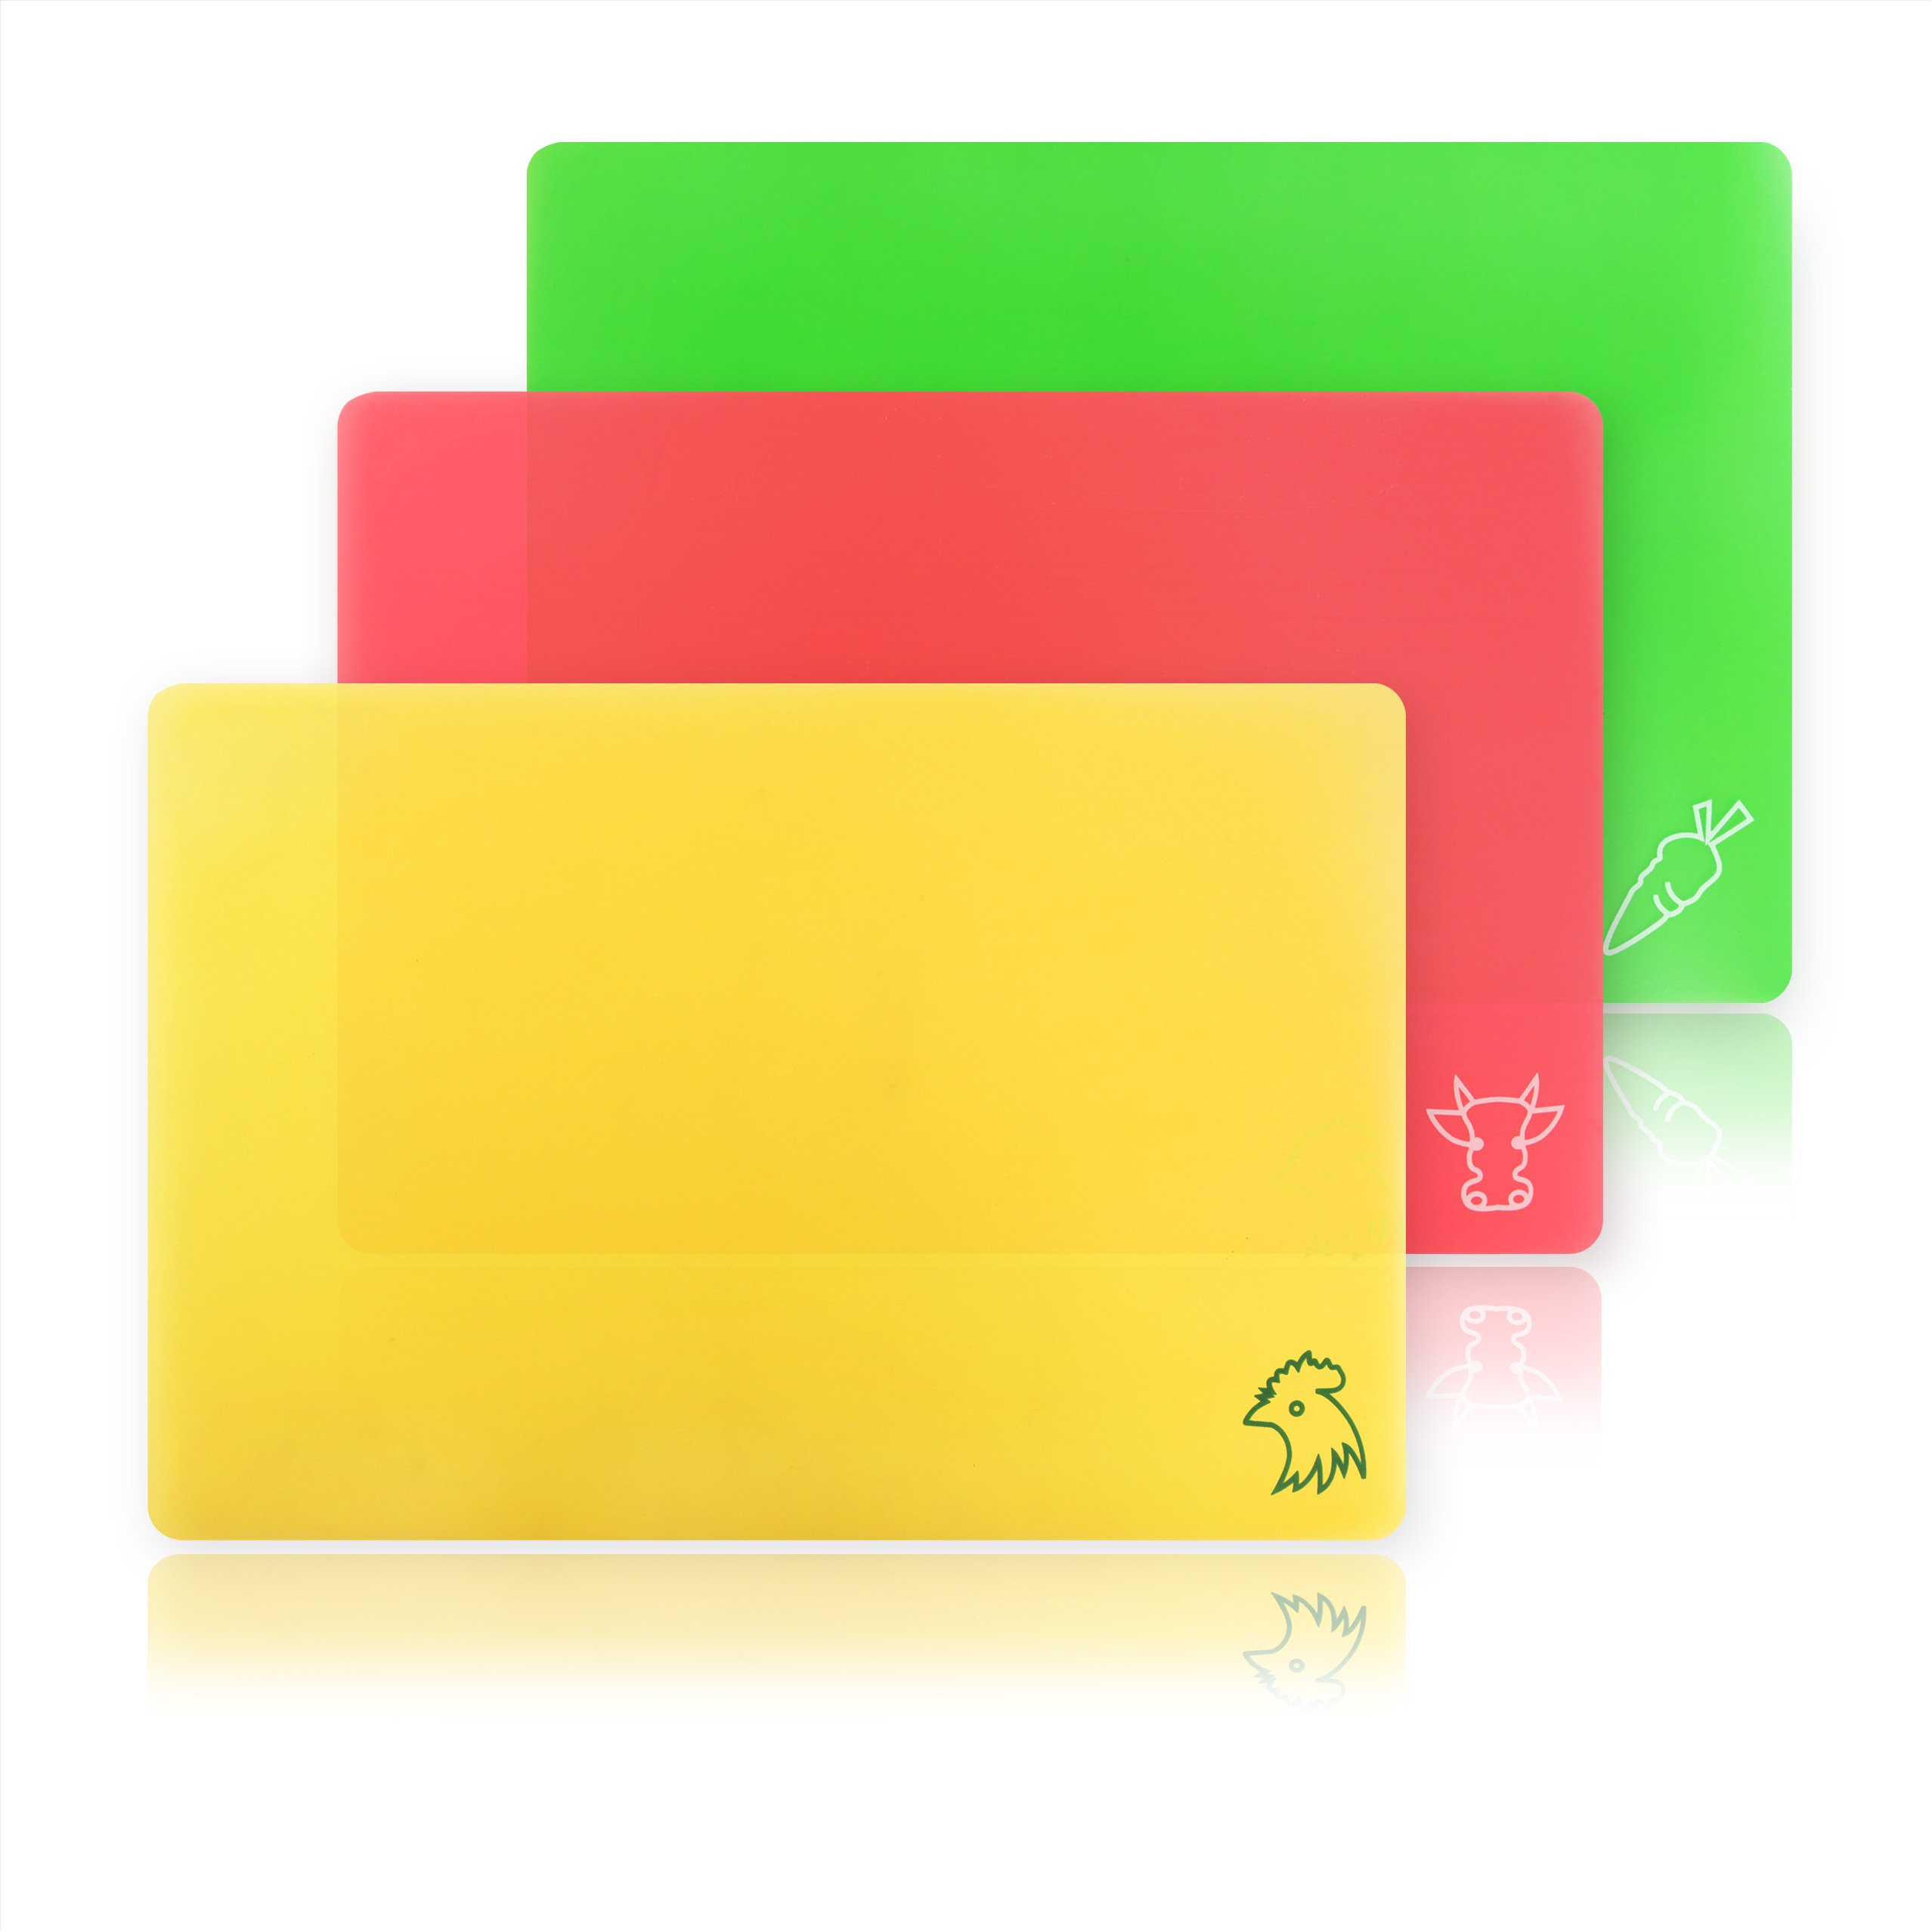 New Star Foodservice 28690 Flexible Cutting Board, 9.5-Inch by 14-Inch, Assorted Colors, Set of 3 by New Star Foodservice (Image #1)